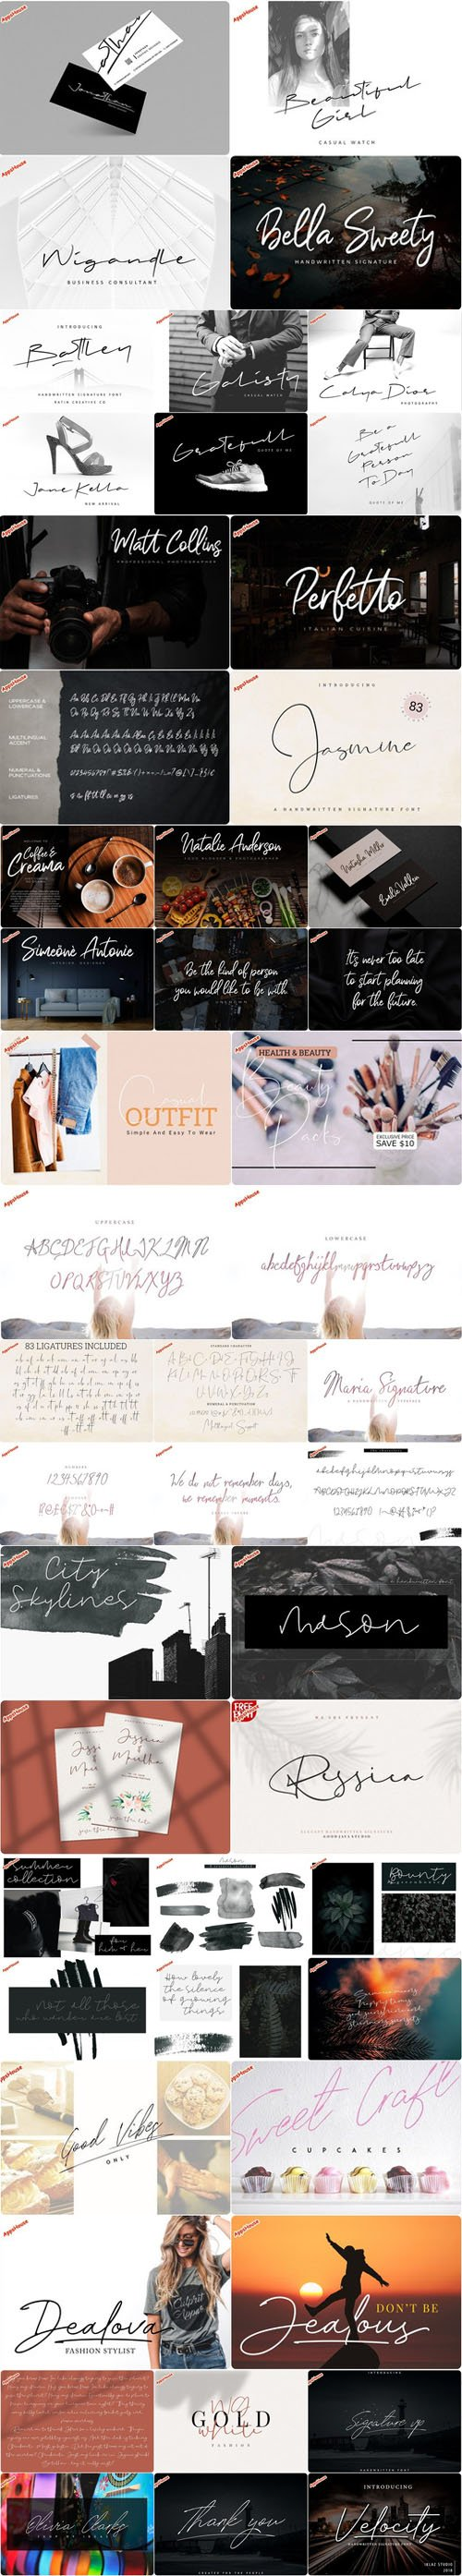 Handwritten Signature Font Collection [8 Fonts]